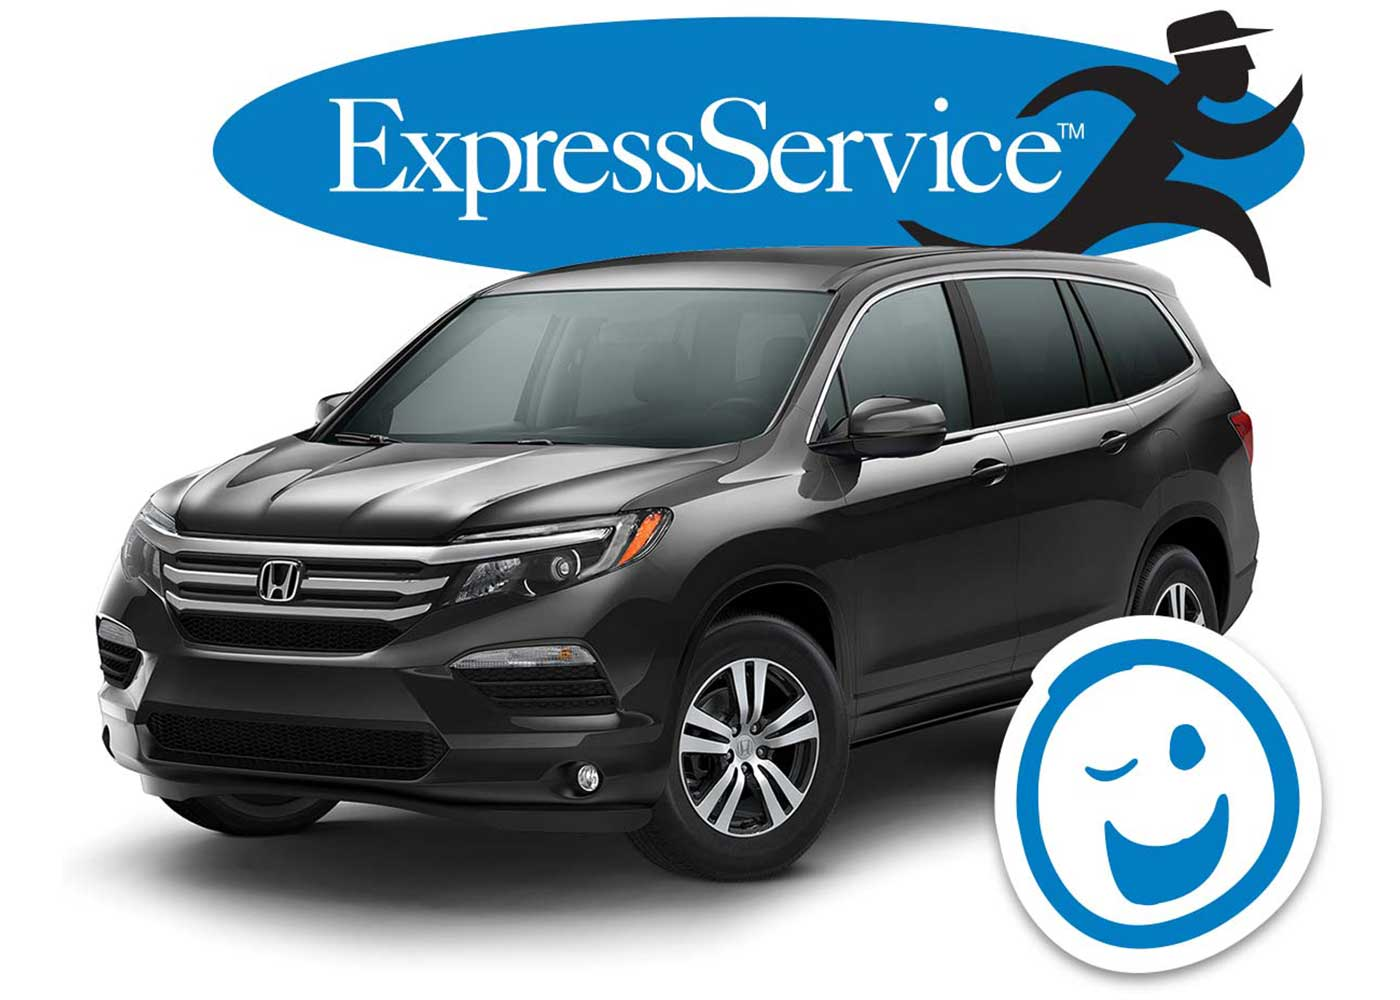 Honda express service dublin honda for Honda financial services mailing address